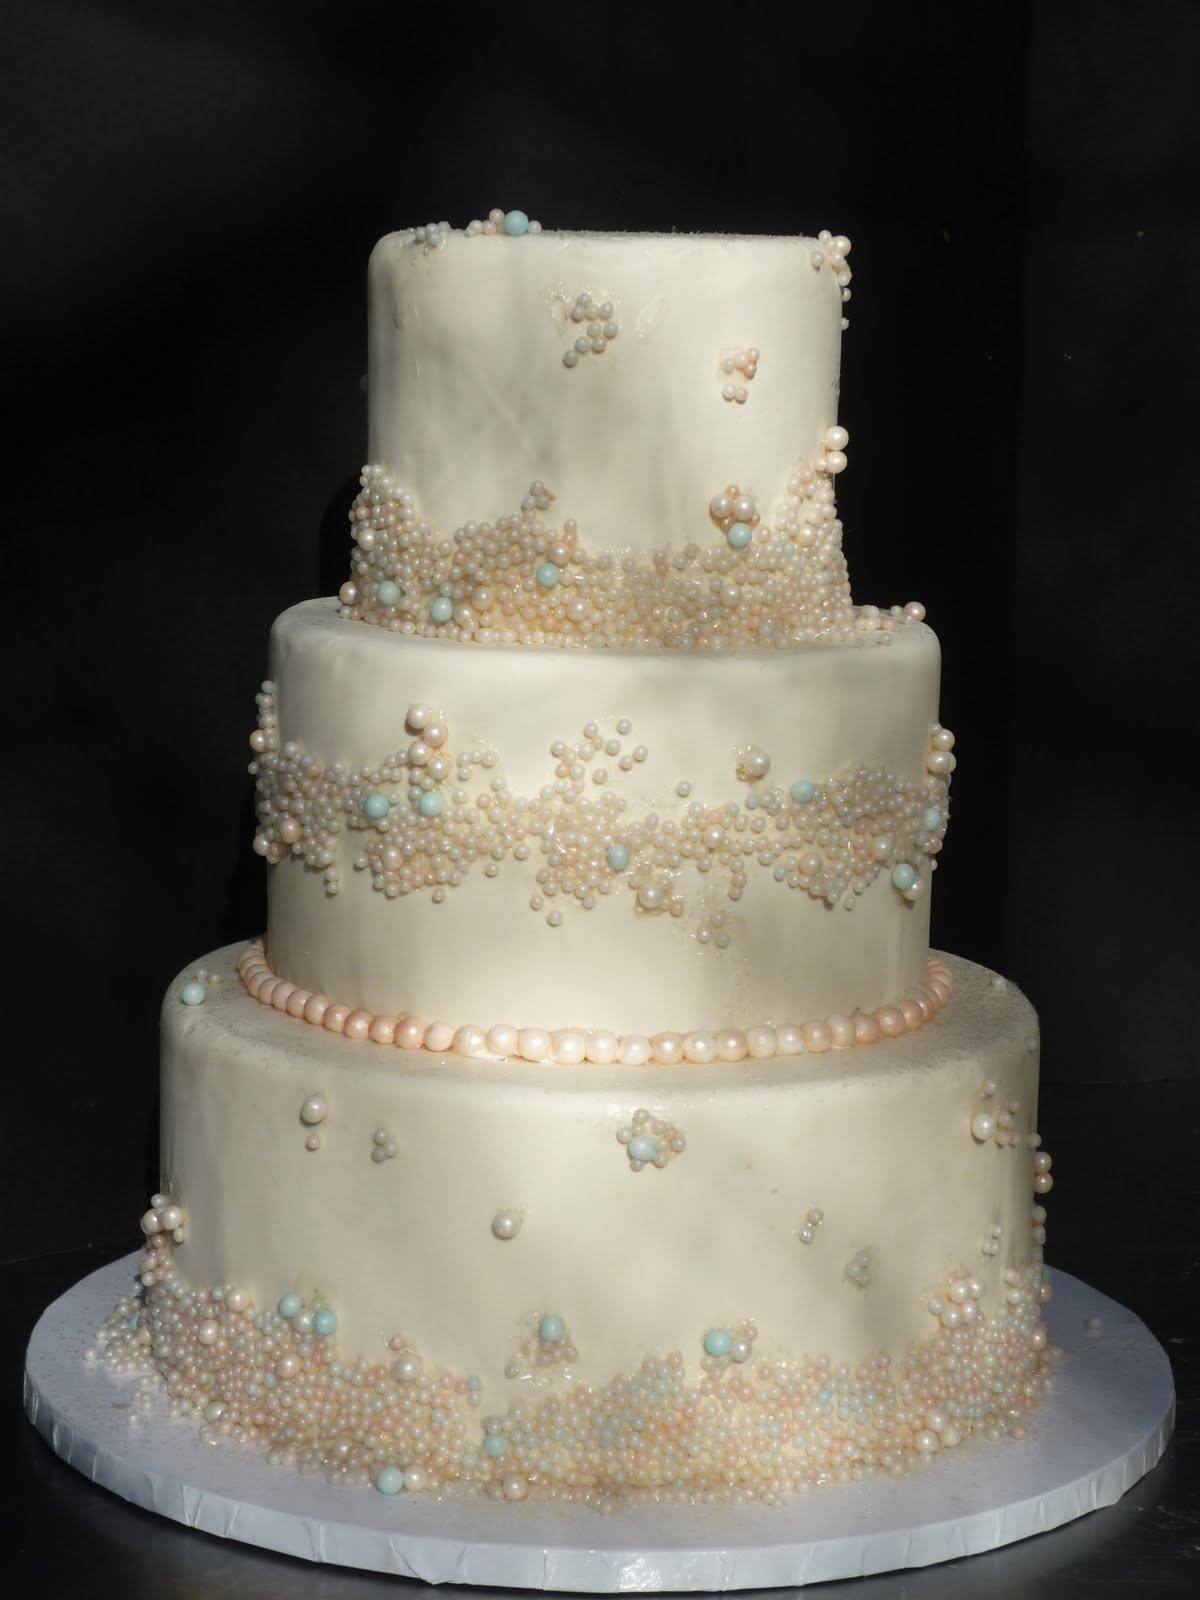 Artisan Bake Shop Wedding Cake Fondant Tiers With Pearls